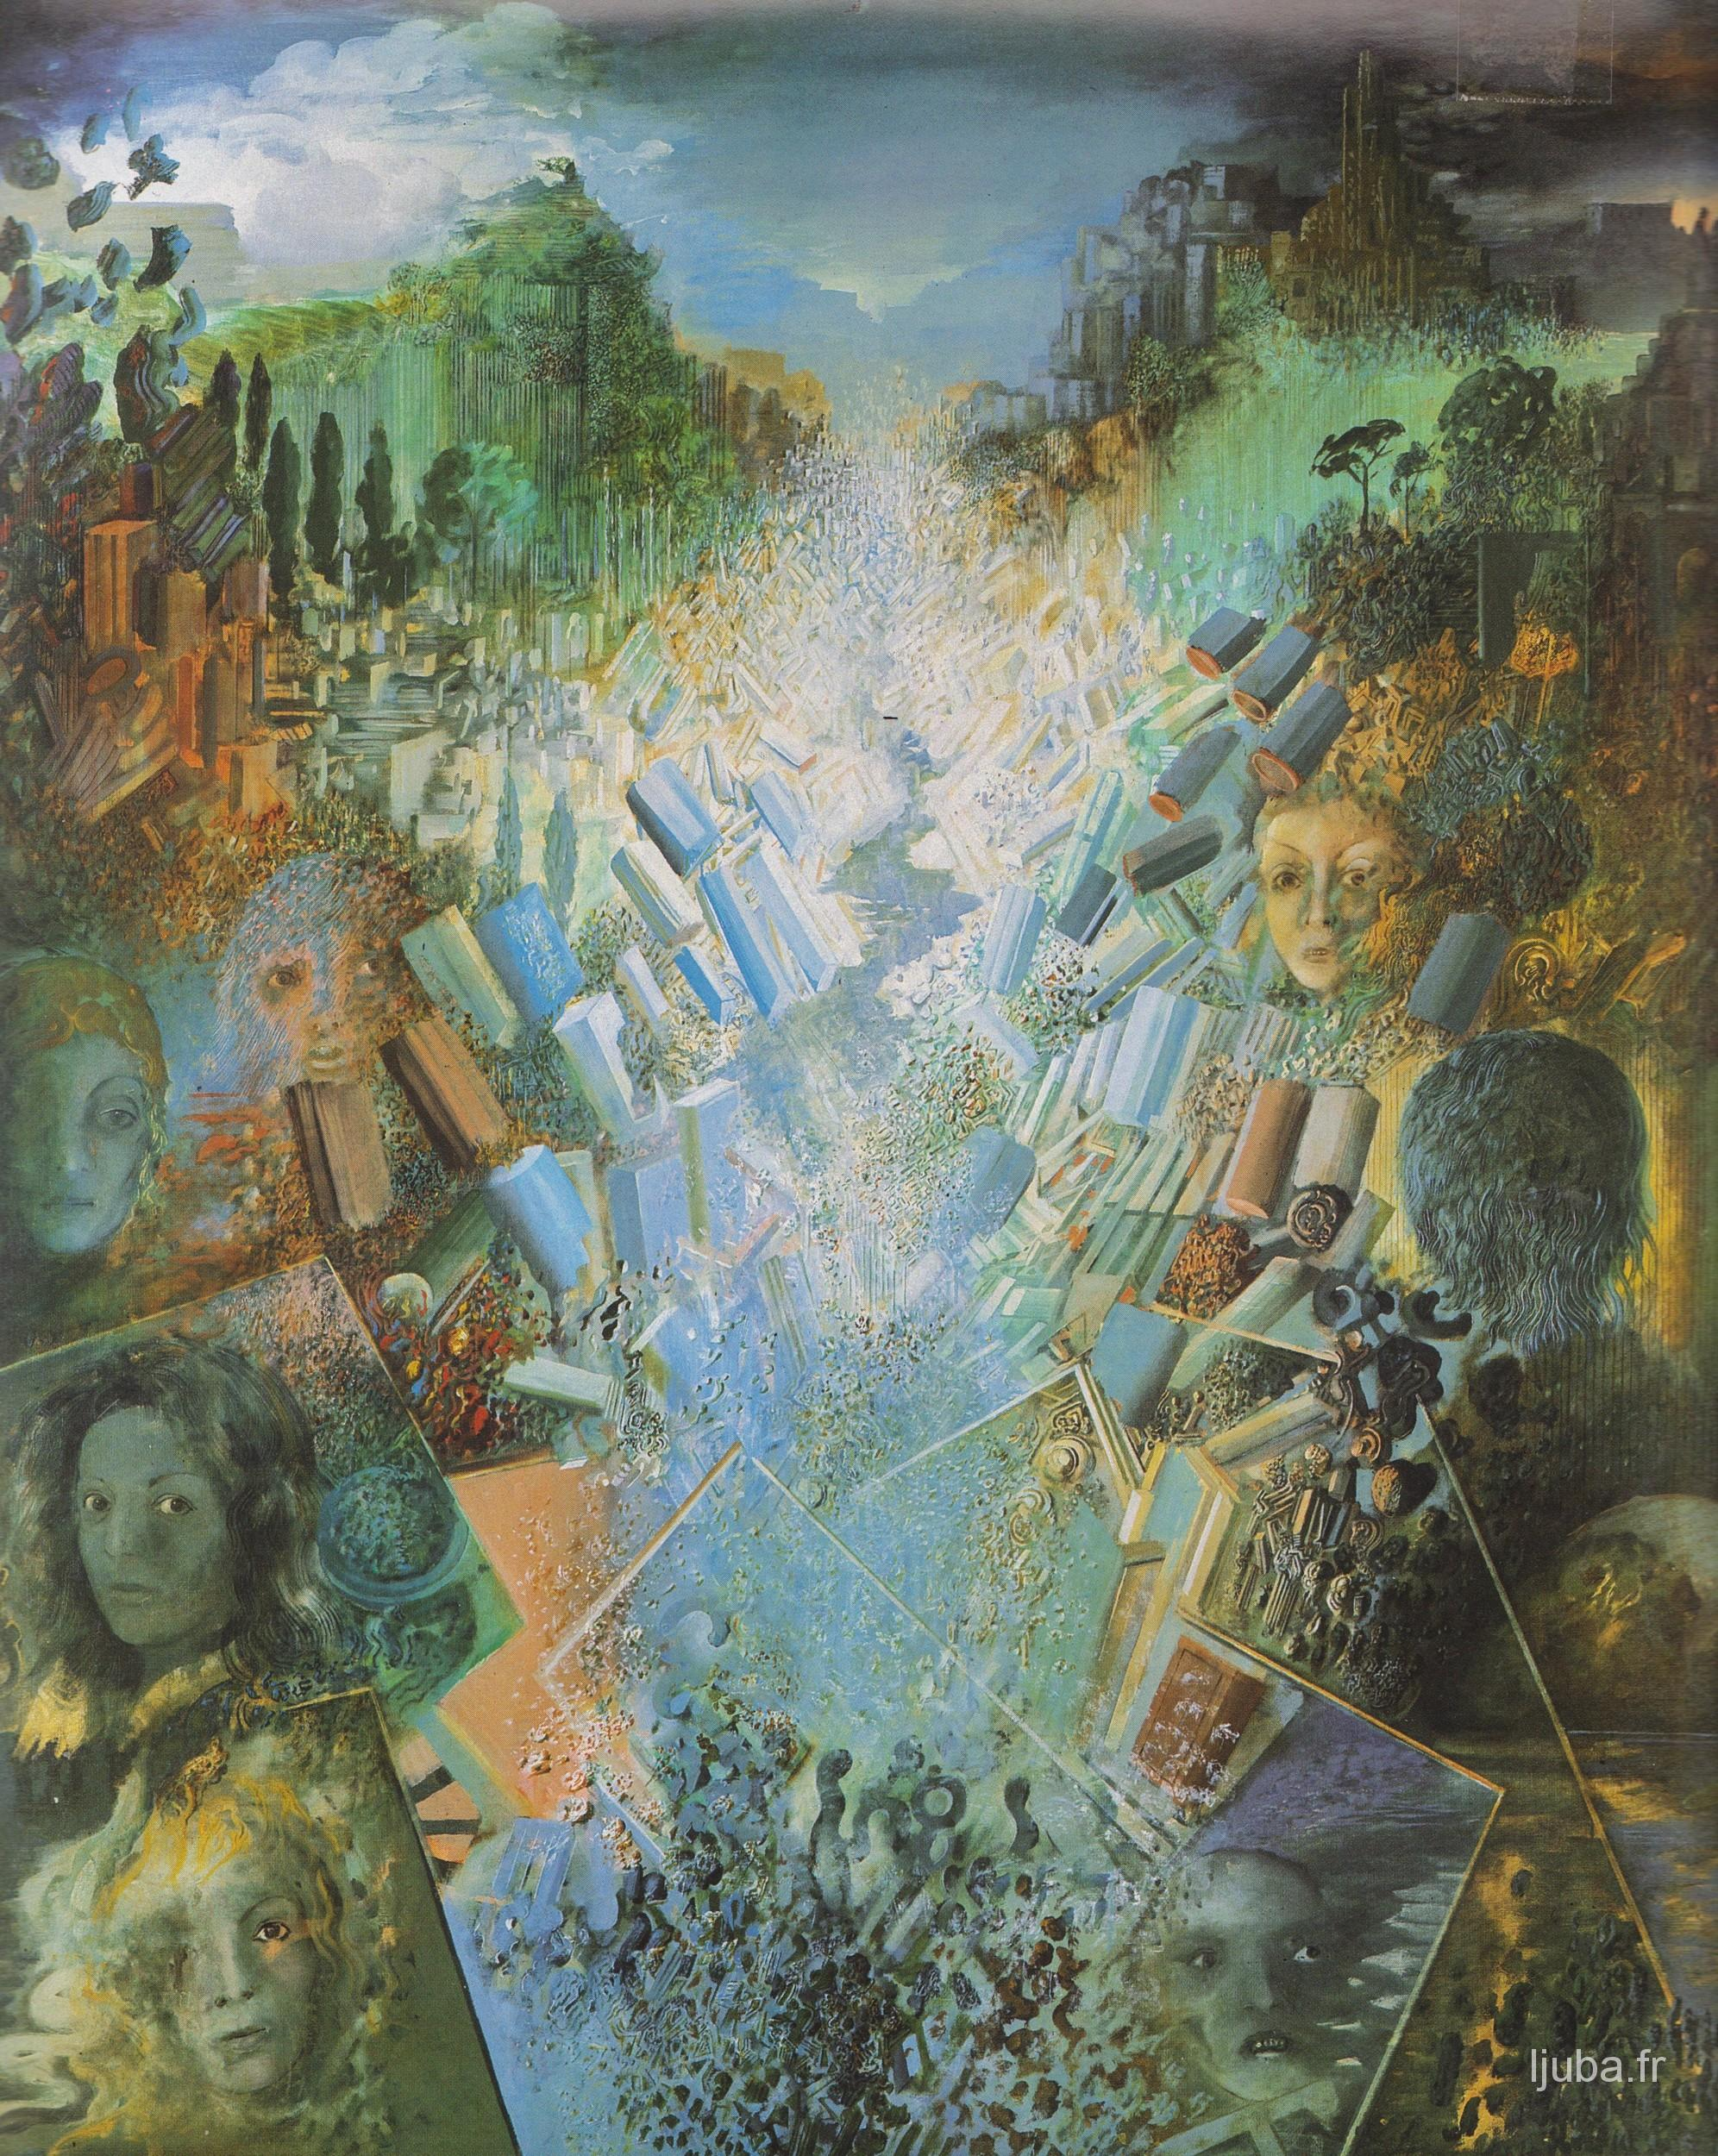 Ljuba Popovic - Le secret de la mémoire, 1983-82